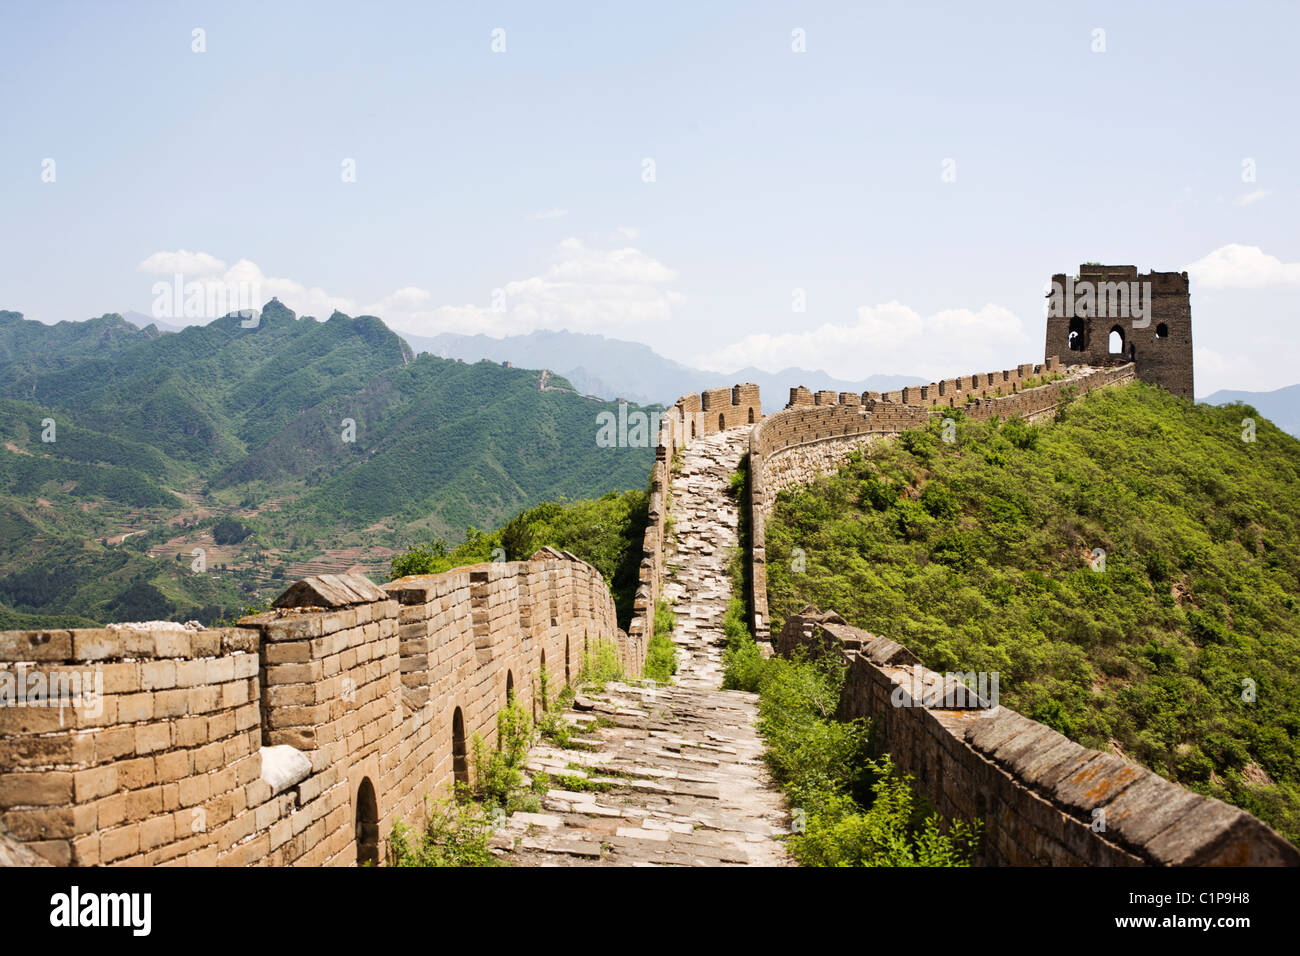 Great Wall of China,view from Wall Stock Photo